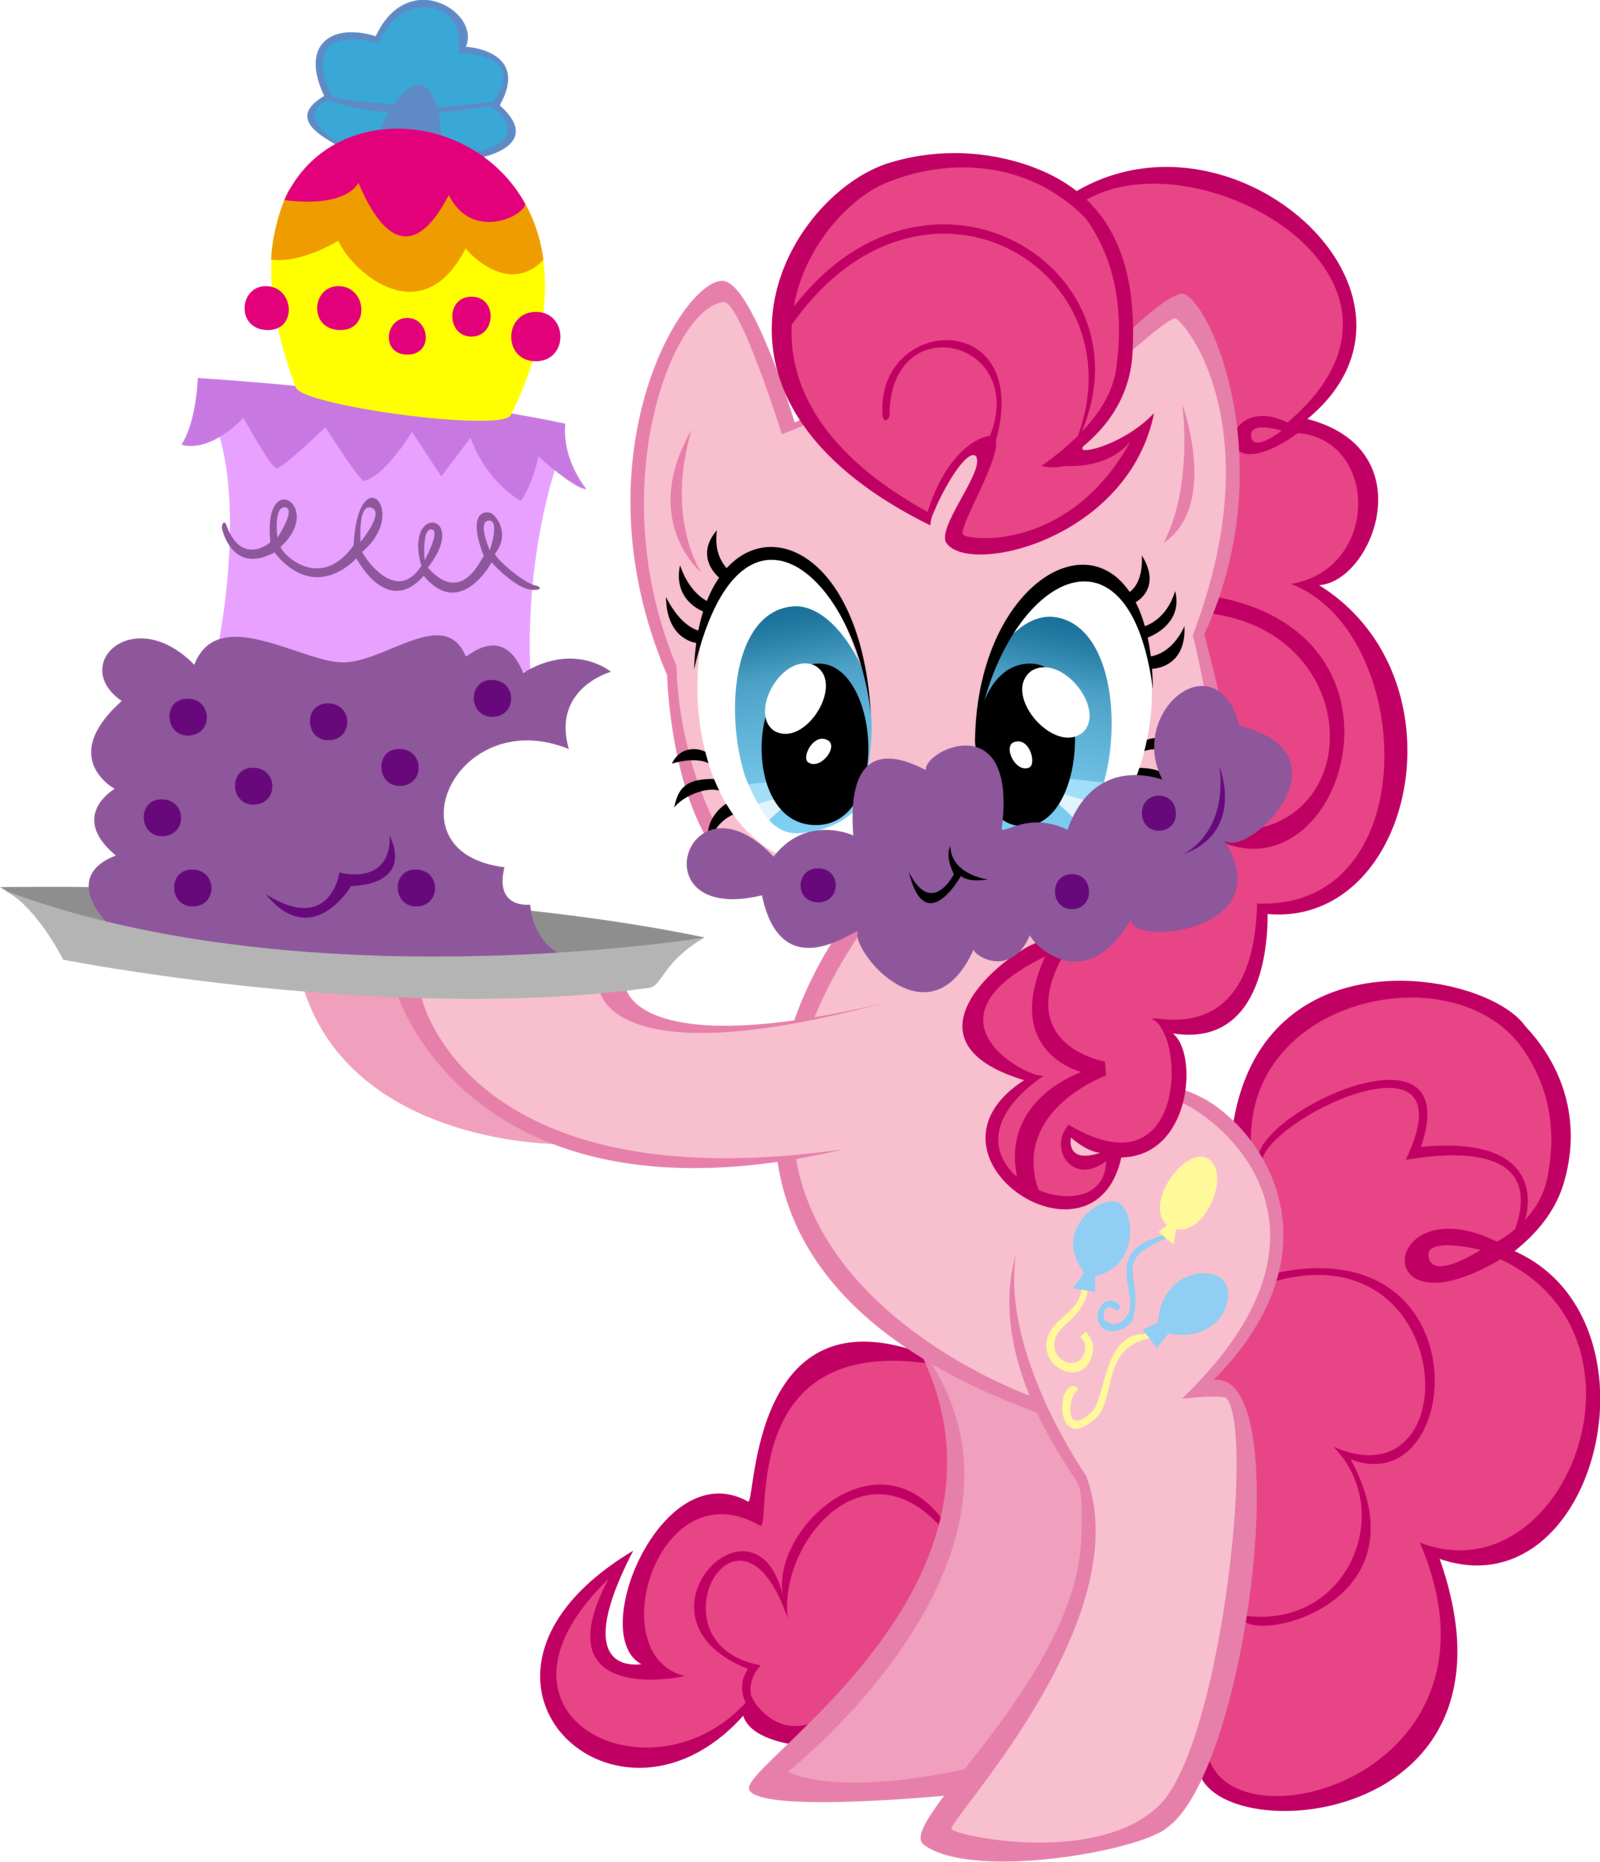 Pie clipart fruit pie. Image pinkie with cake